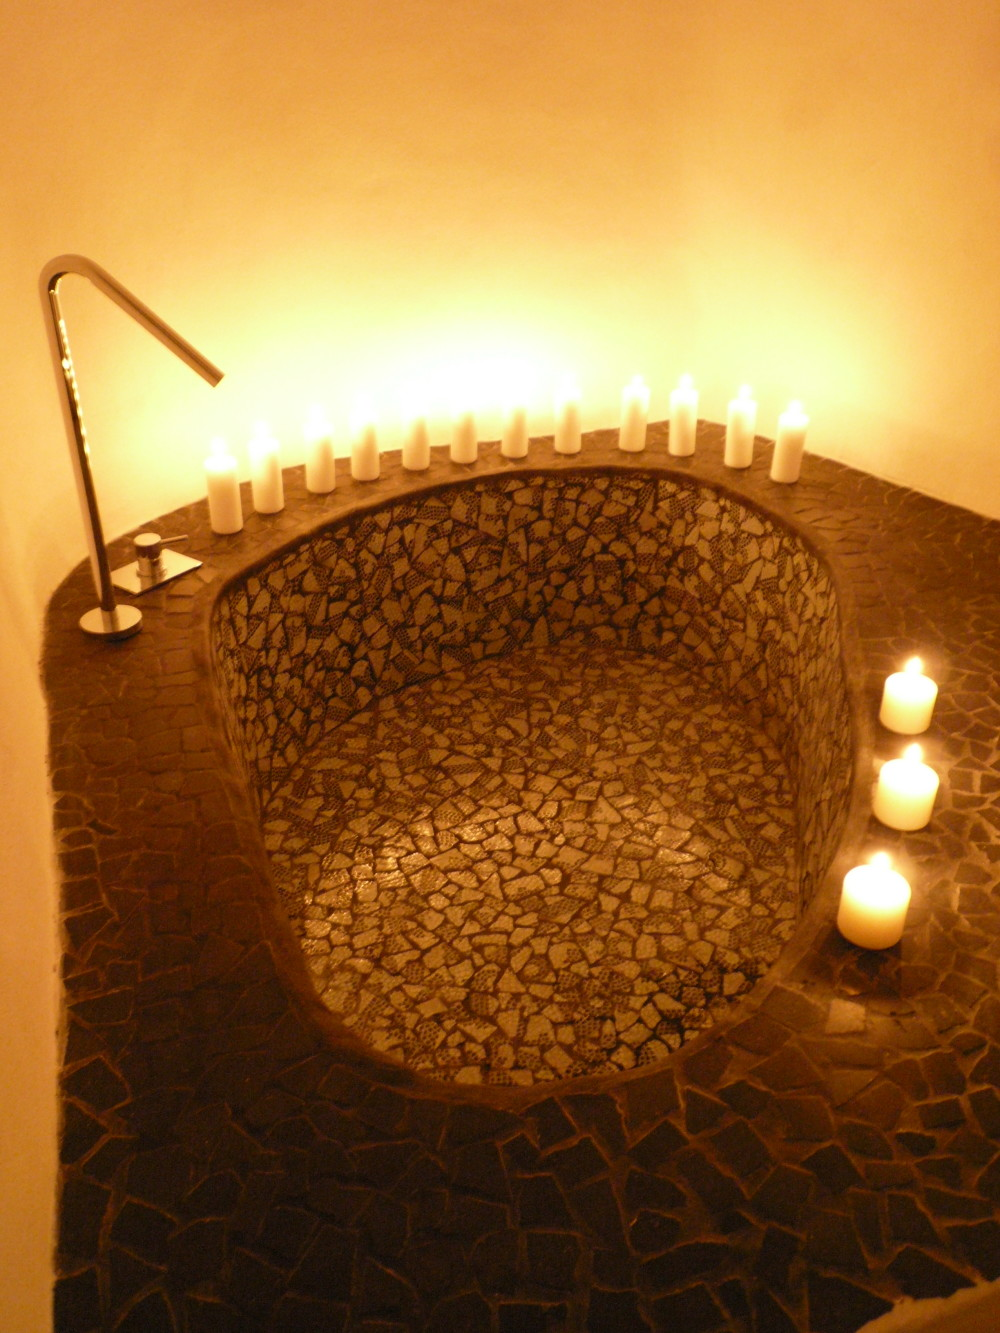 Relaxation tub with a mosaic effect using the house's original marble-chip tiles.